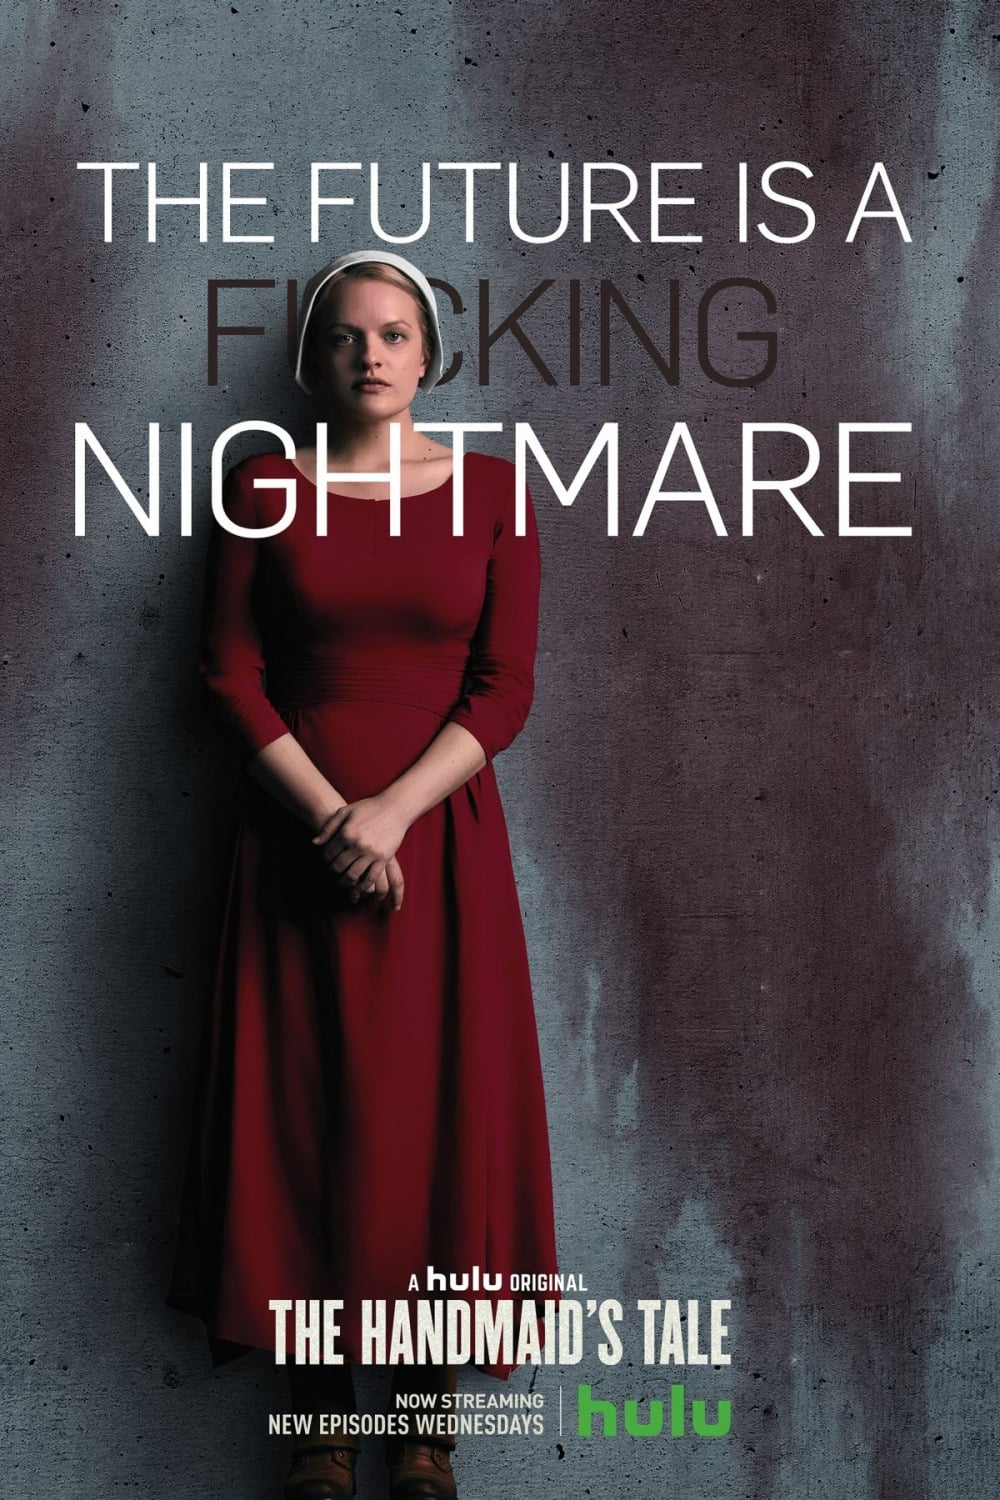 handmaids tale The handmaid's tale 558,096 likes 22,431 talking about this the handmaid's tale, an emmy and golden globe winning hulu original series, and ongoing.